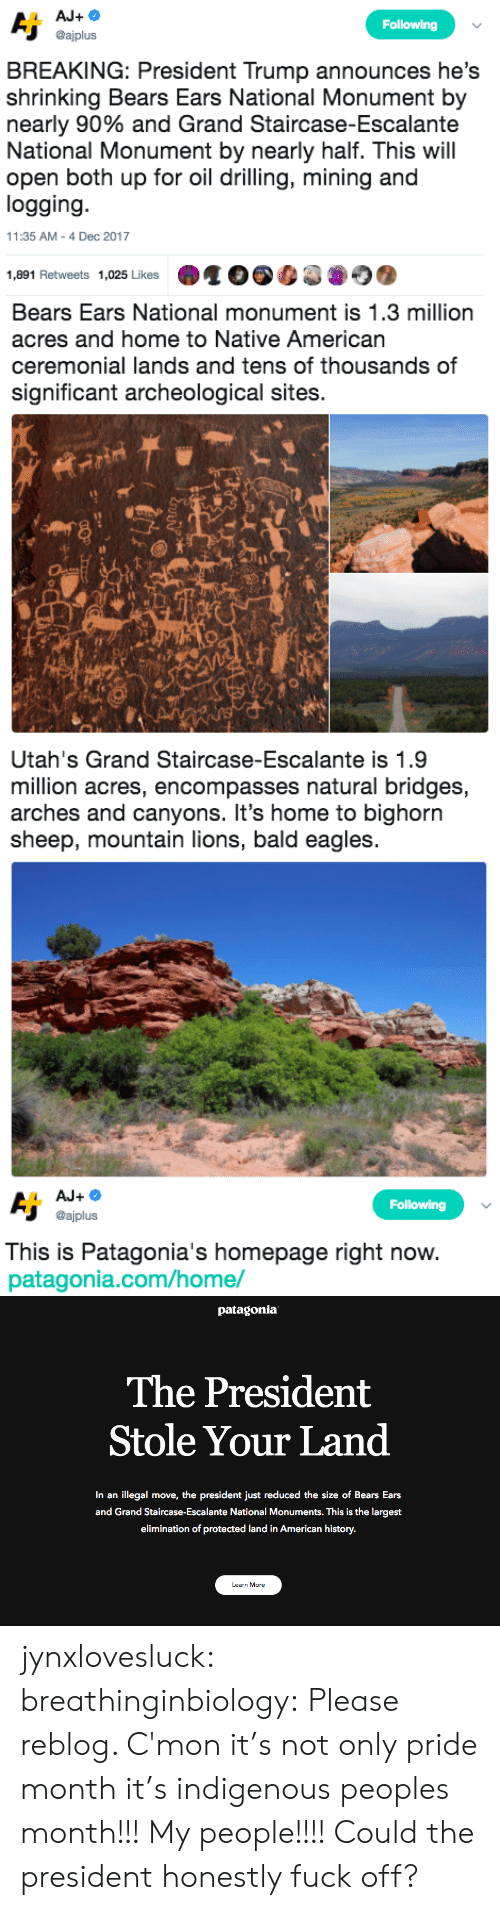 patagonia: Following  @ajplus  BREAKING: President Trump announces he's  shrinking Bears Ears National Monument by  nearly 90% and Grand Staircase-Escalante  National Monument by nearly half. This will  open both up for oil drilling, mining and  logging  11:35 AM-4 Dec 2017  1,891 Retweets 1,025 Likes   Bears Ears National monument is 1.3 million  acres and home to Native American  ceremonial lands and tens of thousands of  significant archeological sites.  sh   Utah's Grand Staircase-Escalante is 1.9  million acres, encompasses natural bridges,  arches and canyons. It's home to bighorn  sheep, mountain lions, bald eagles   Following  @ajplus  This is Patagonia's homepage right now  patagonia.com/home/   patagonia  The President  Stole Your Land  In an illegal move, the president just reduced the size of Bears Ears  and Grand Staircase-Escalante National Monuments. This is the largest  elimination of protected land in American history.  Learn More jynxlovesluck:  breathinginbiology: Please reblog.   C'mon it's not only pride month it's indigenous peoples month!!! My people!!!! Could the president honestly fuck off?